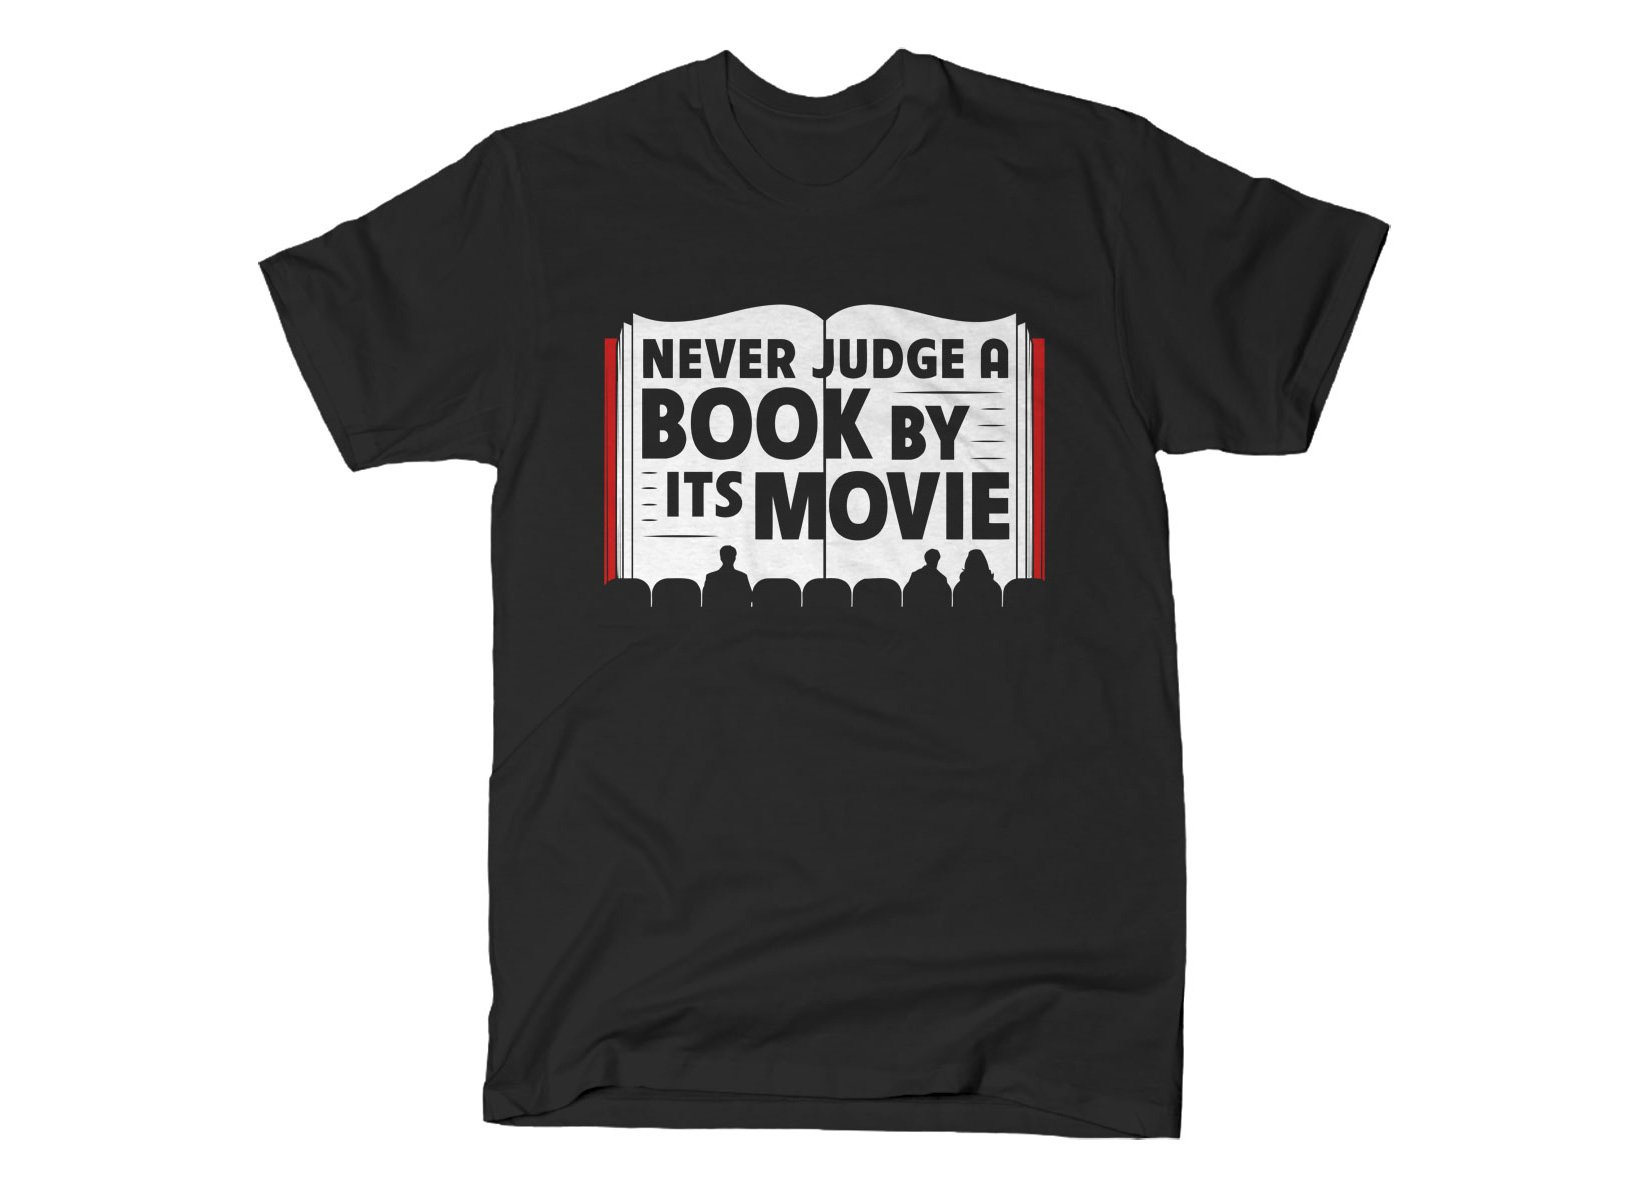 Never Judge A Book By Its Movie on Mens T-Shirt